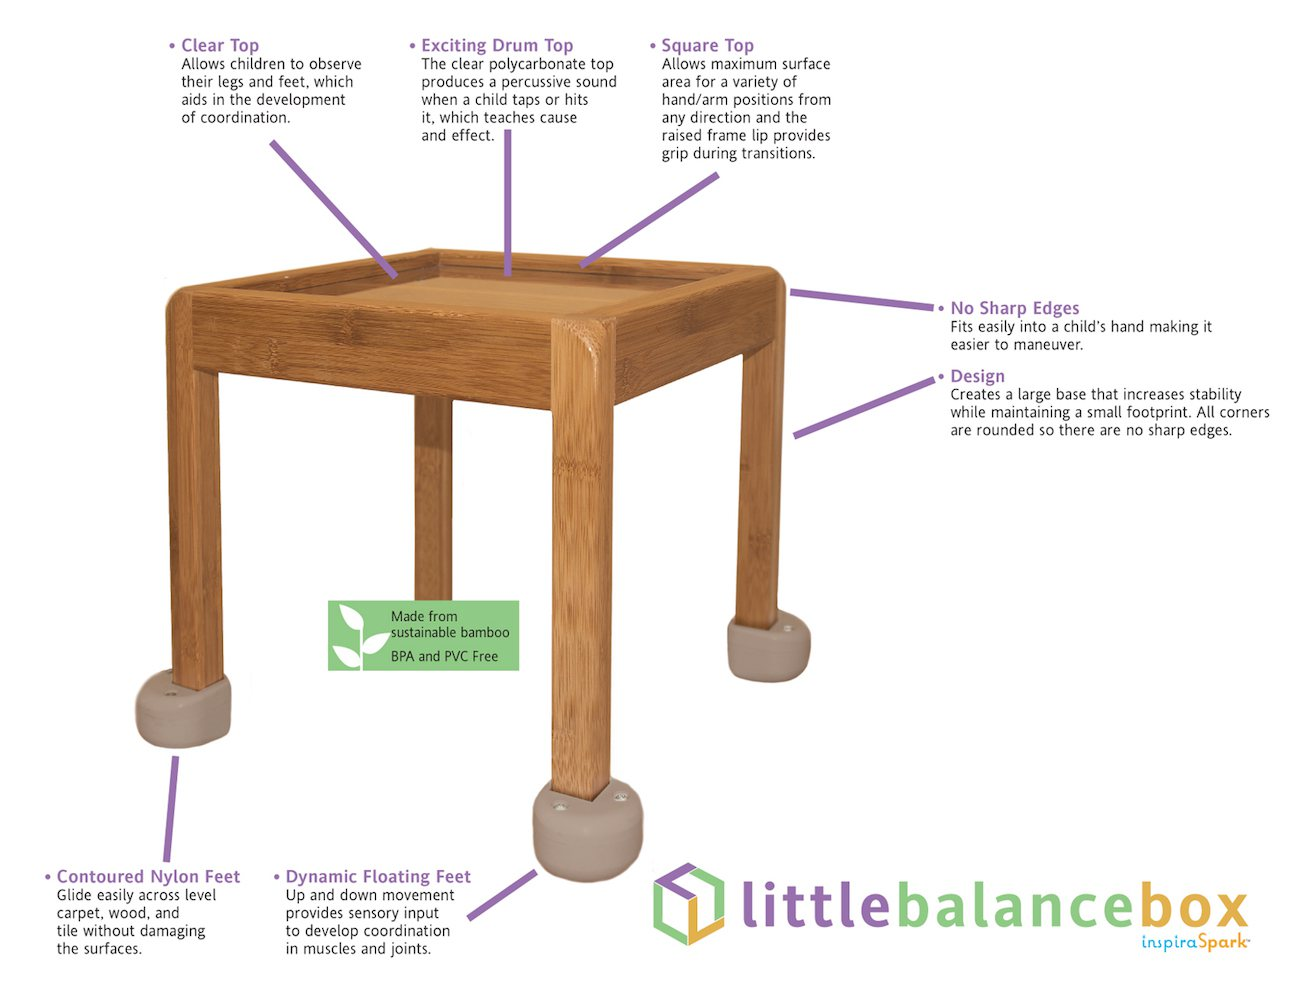 Little Balance Box